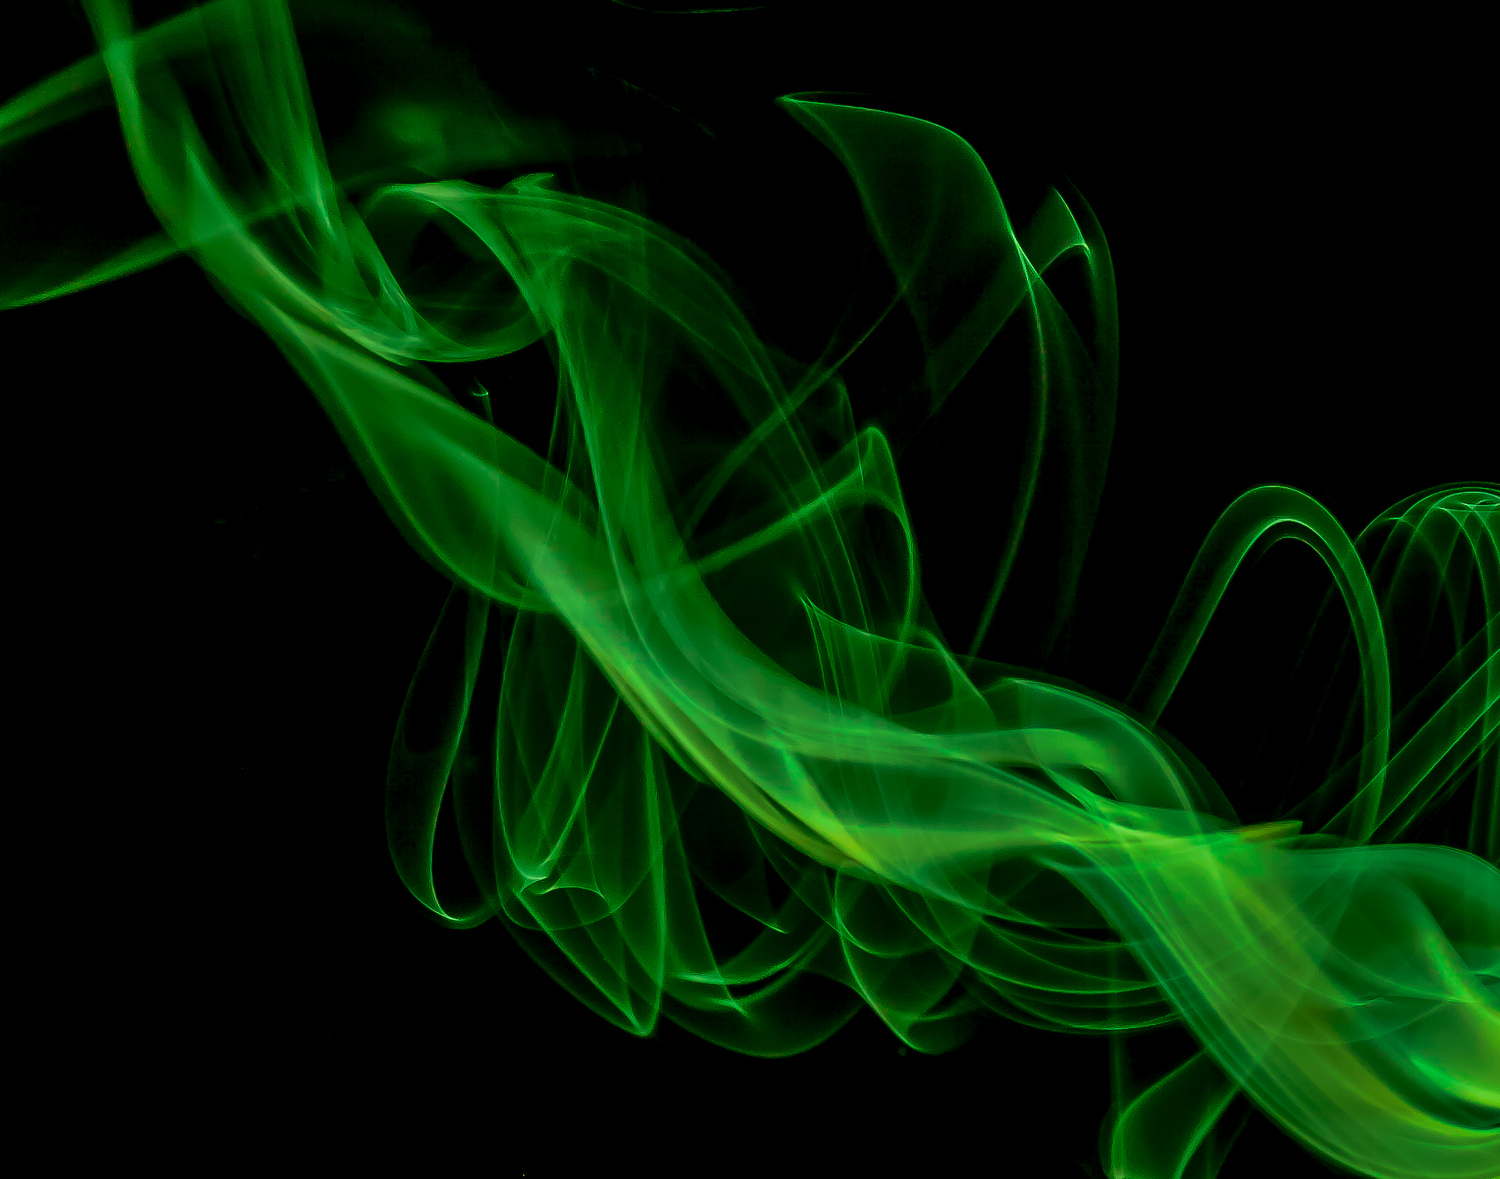 Abstract Smoke Photography - Alien Gas